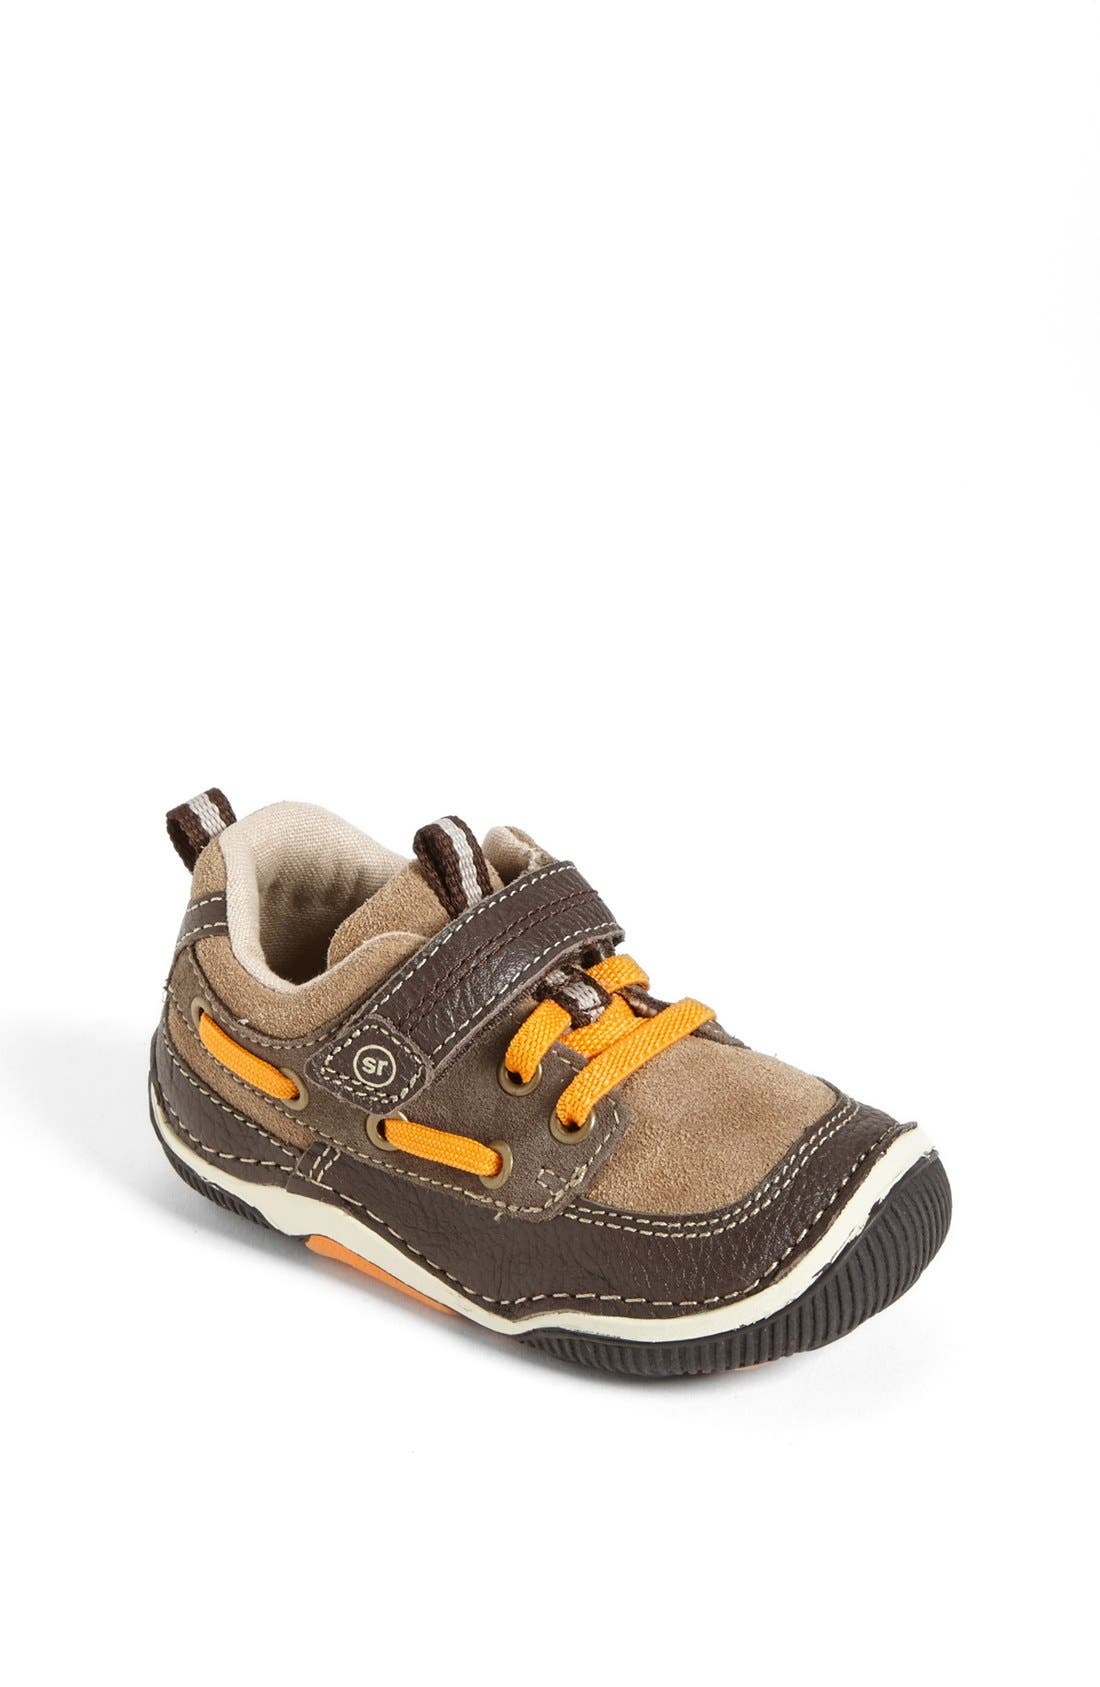 Alternate Image 1 Selected - Stride Rite 'Mosby' Sneaker (Baby, Walker & Toddler)